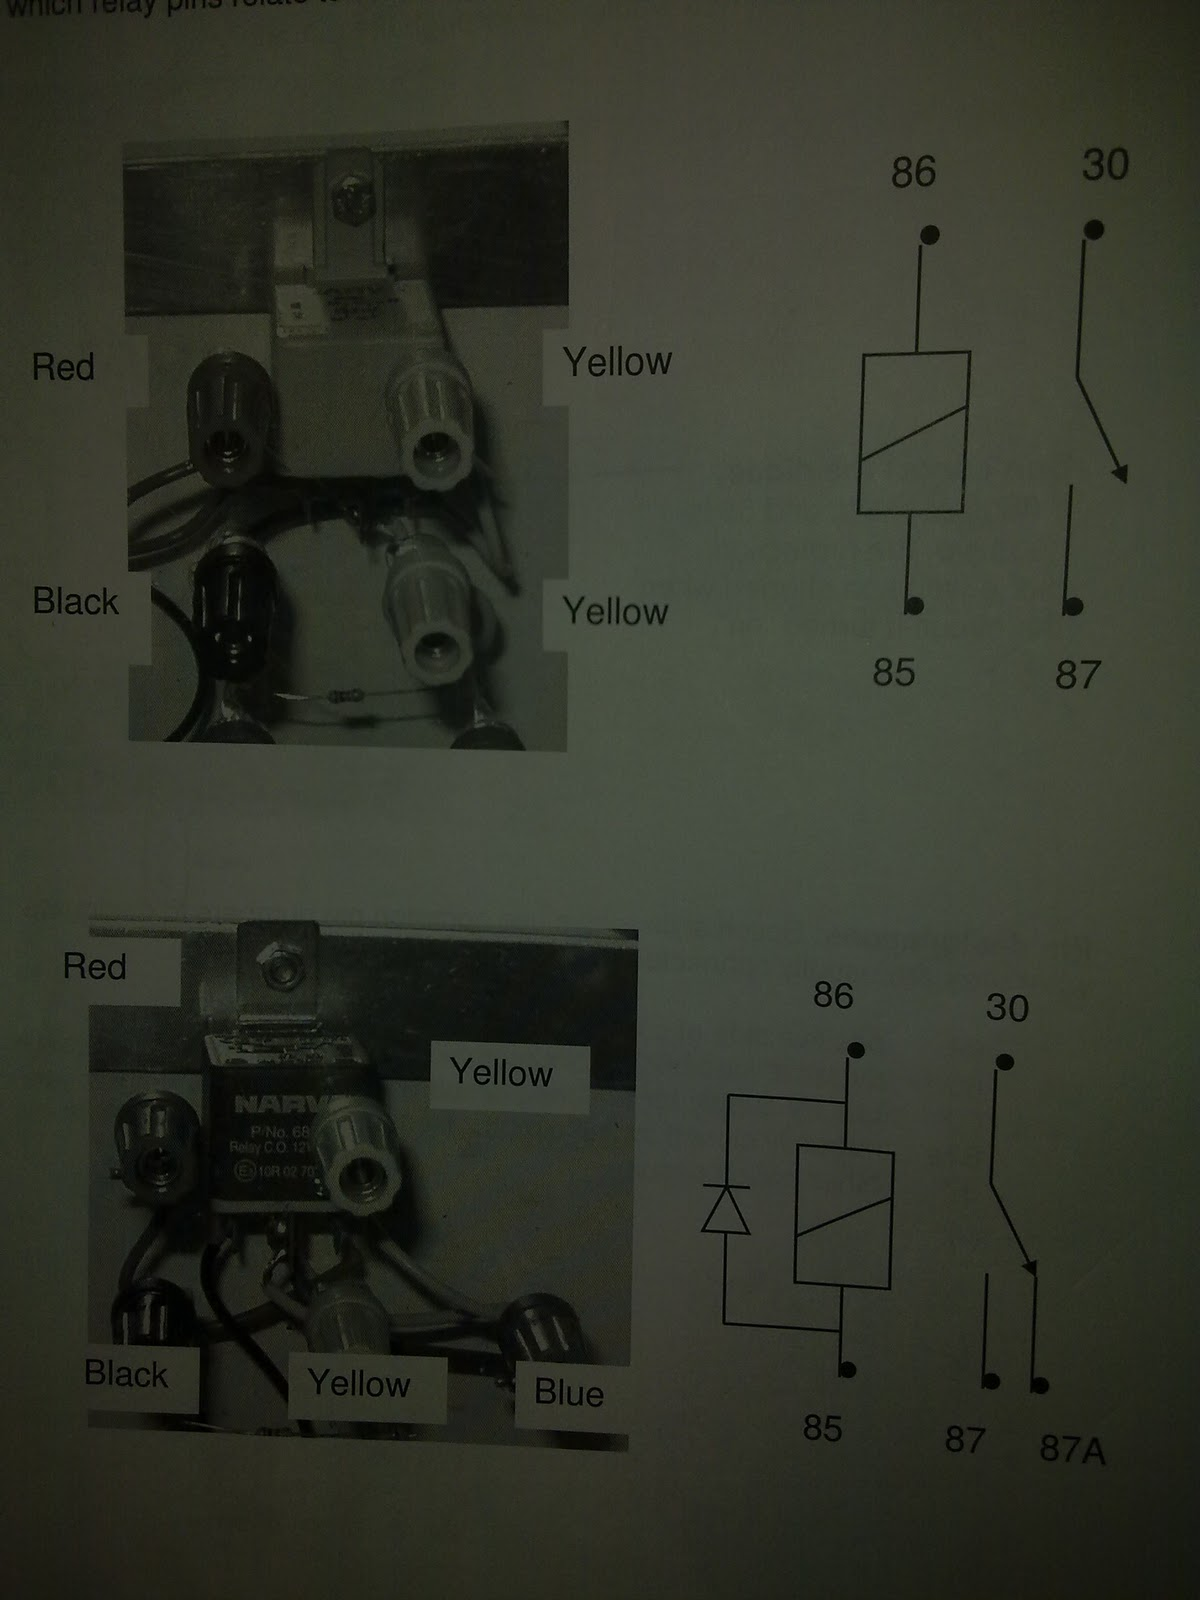 Leo Relays Relay Diagram 5 Pin Below Is For Wiring On Electrical Boards The Diagrams And Pictures Show Which Pins Relate To Different Colored Terminals